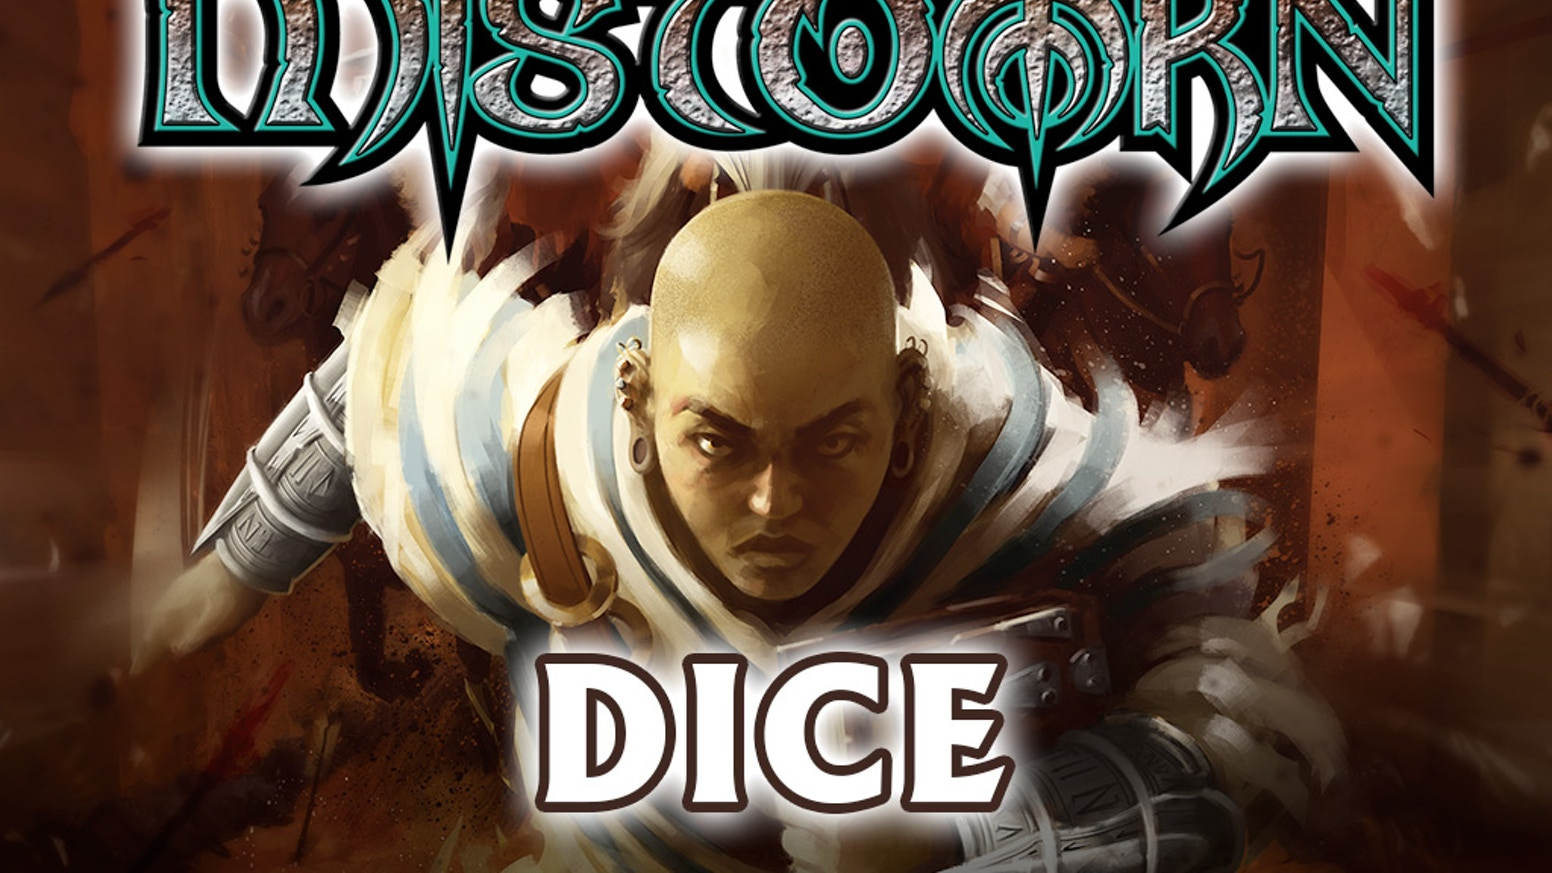 Dice for fans of Brandon Sanderson's Mistborn and the Mistborn Adventure Game